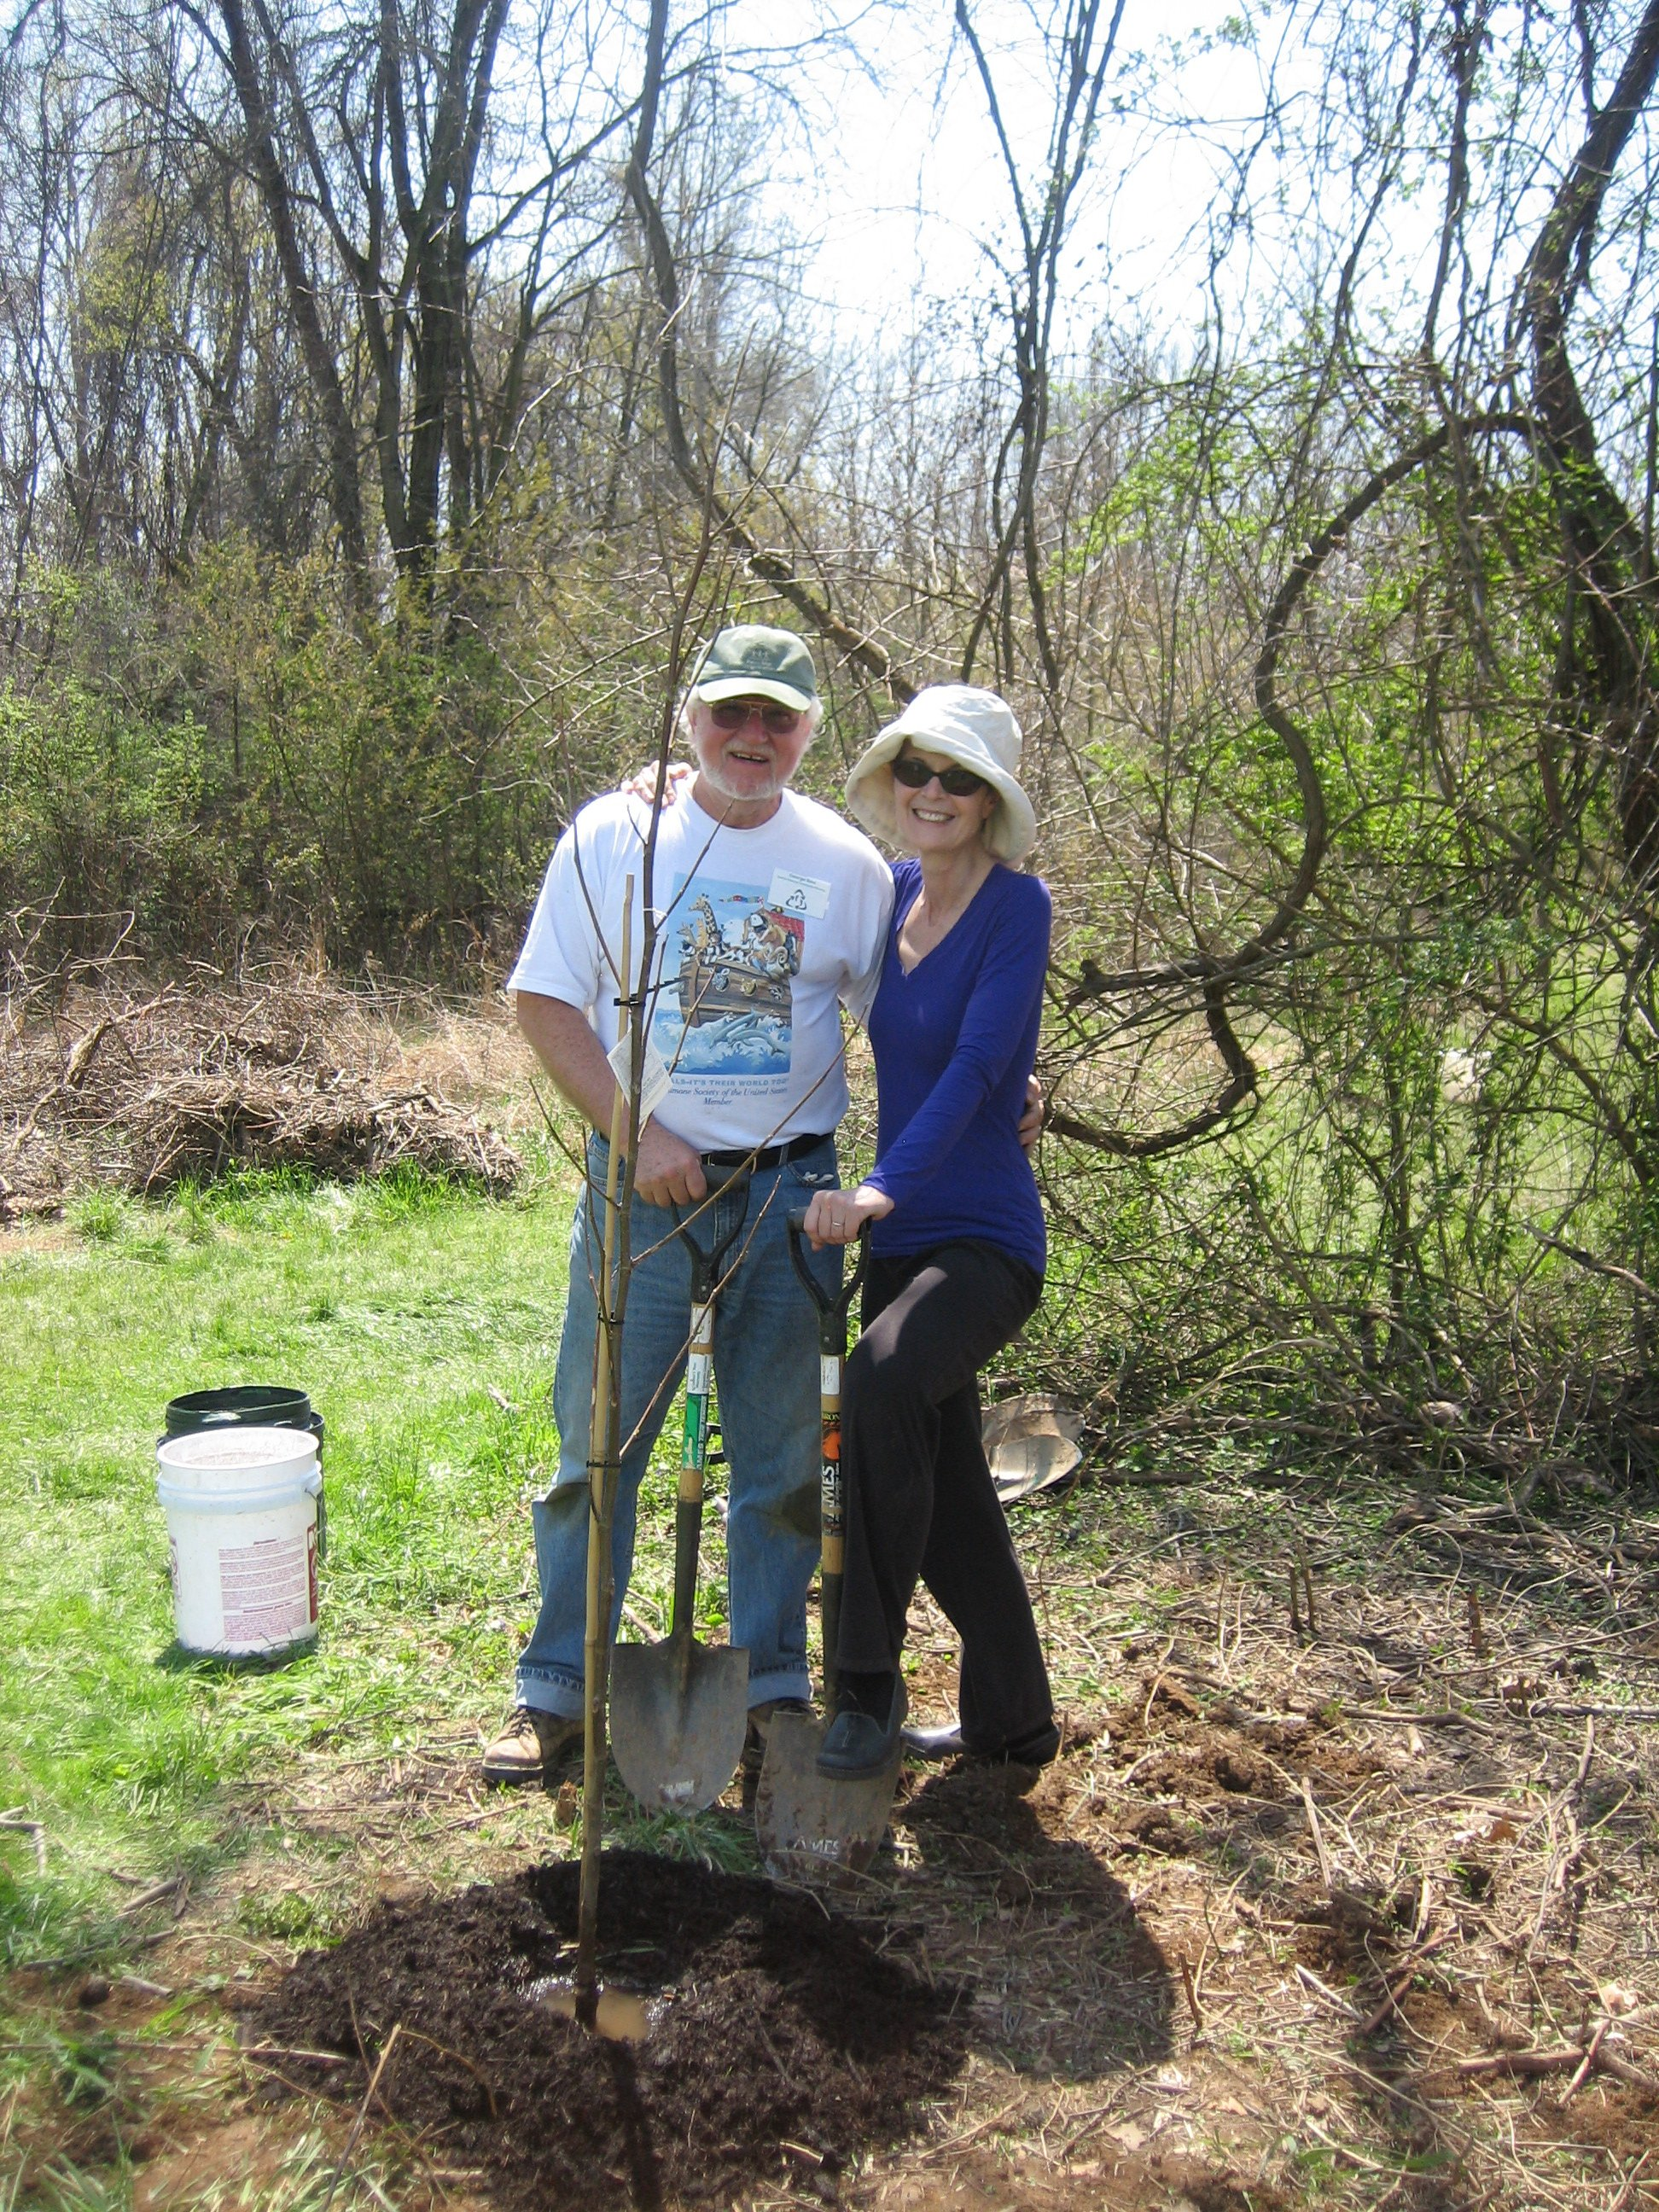 SGCPC volunteers lead the native tree planting activities